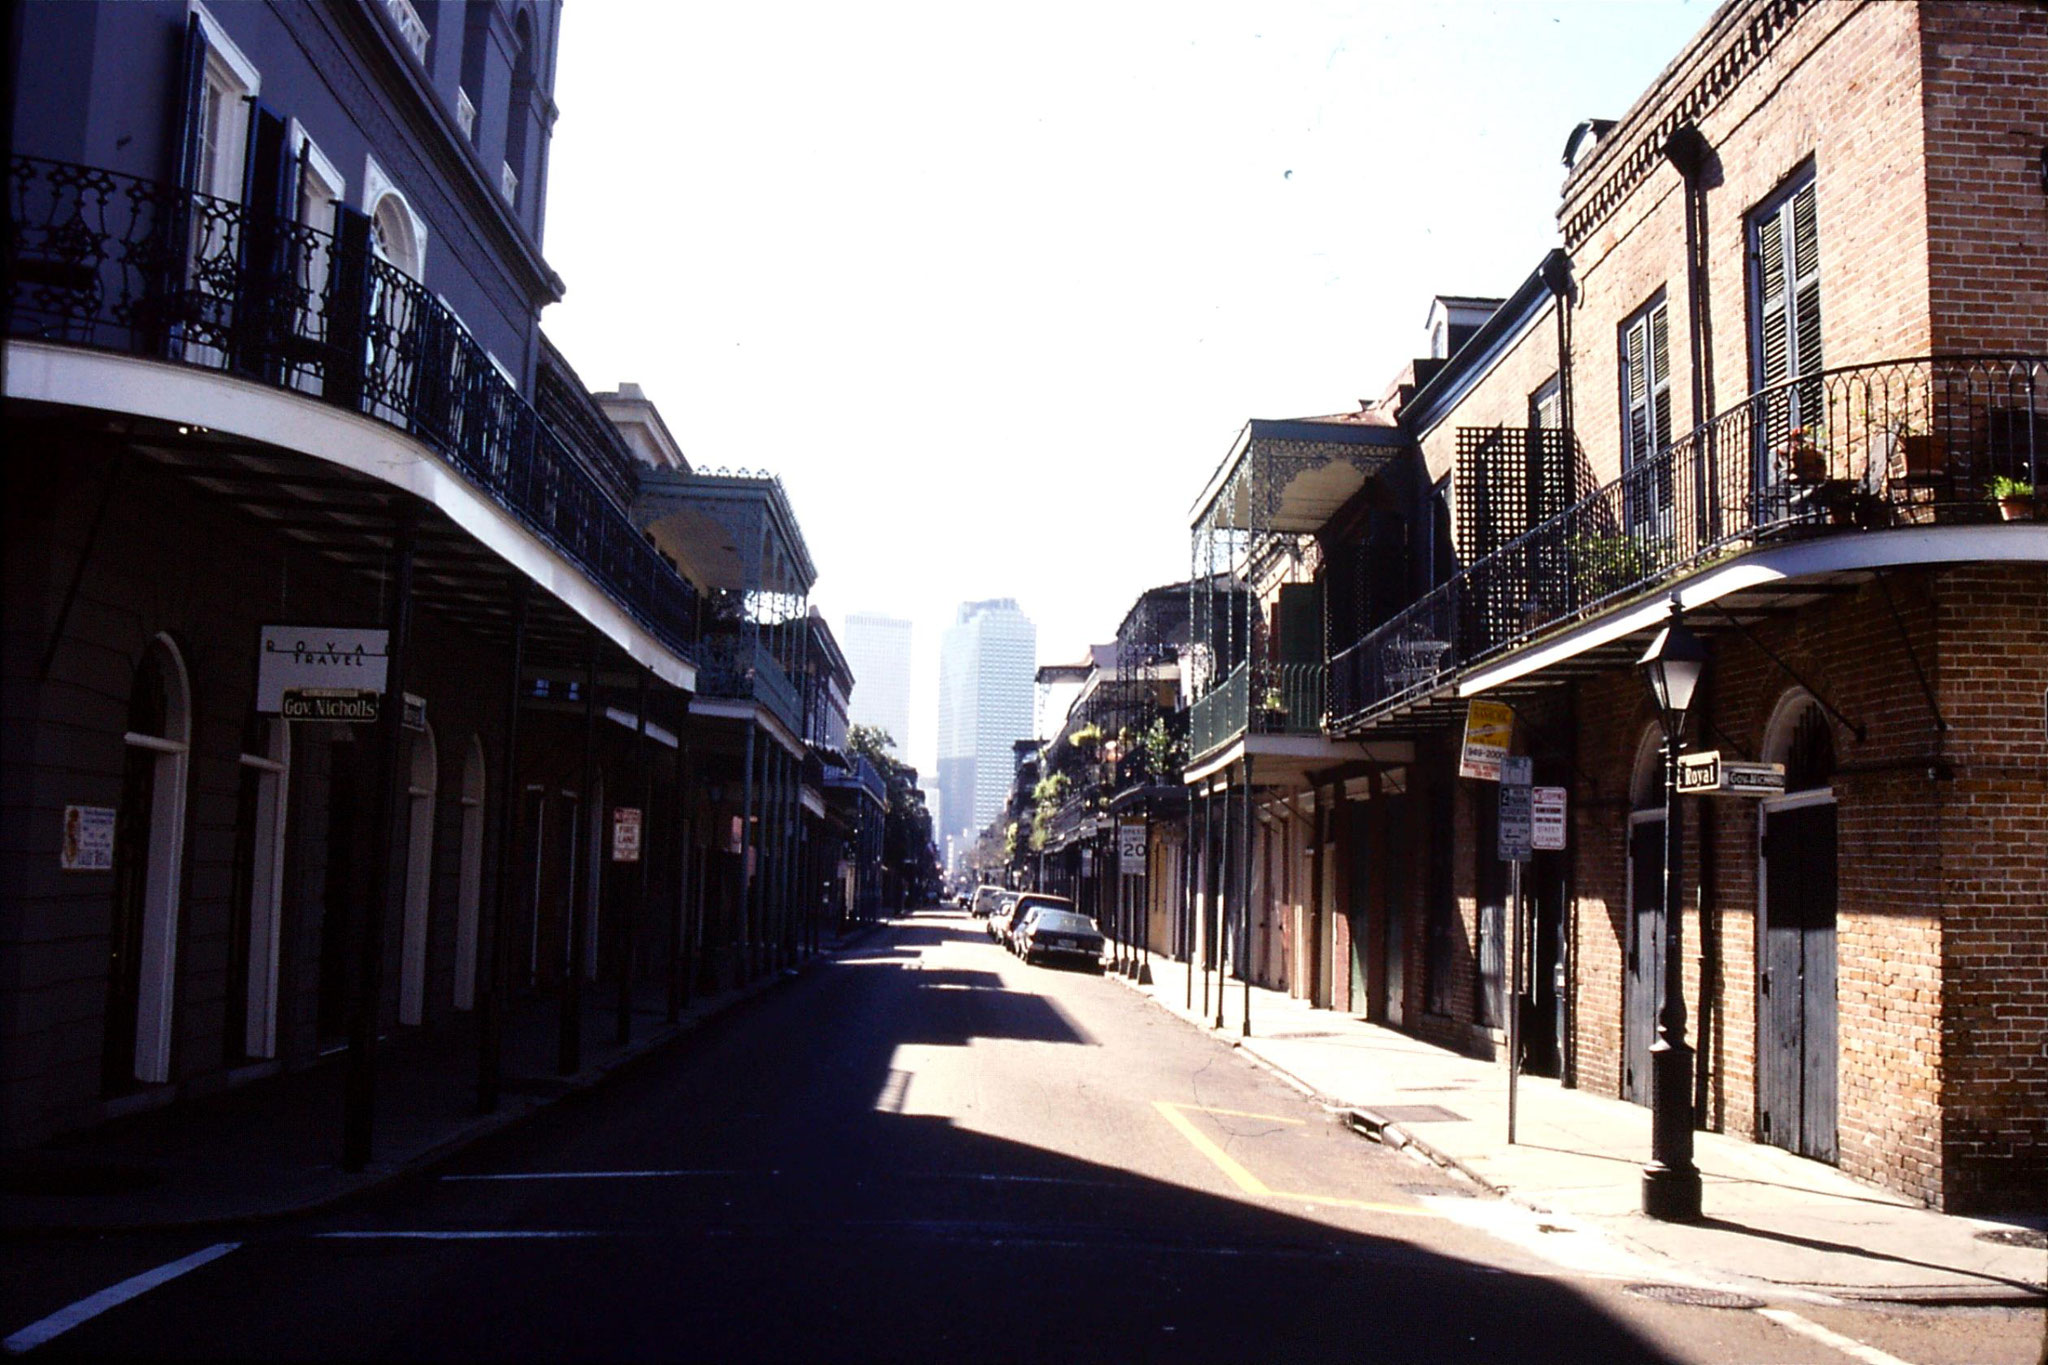 16/1/1991: 10: Old Quarter of New Orleans